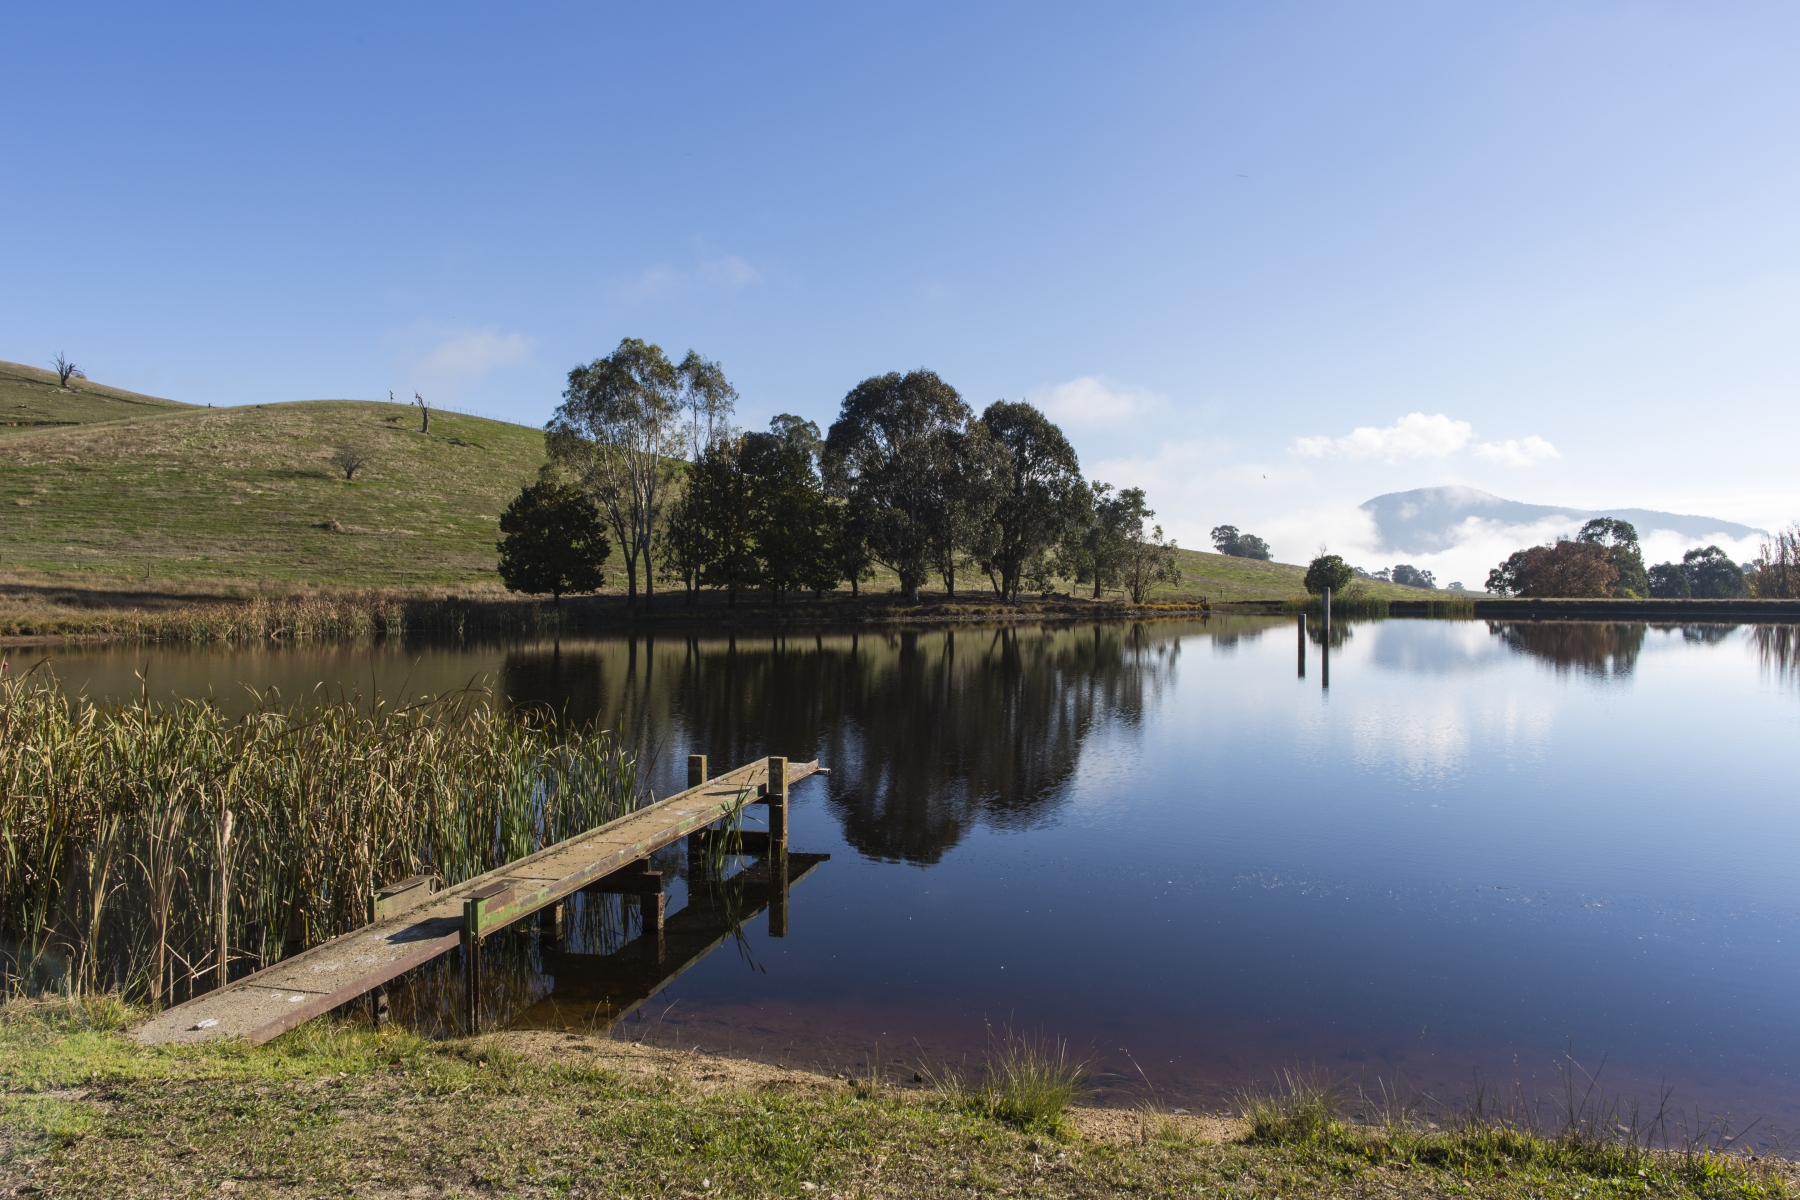 Snowy-River-Camp-May-2018-37